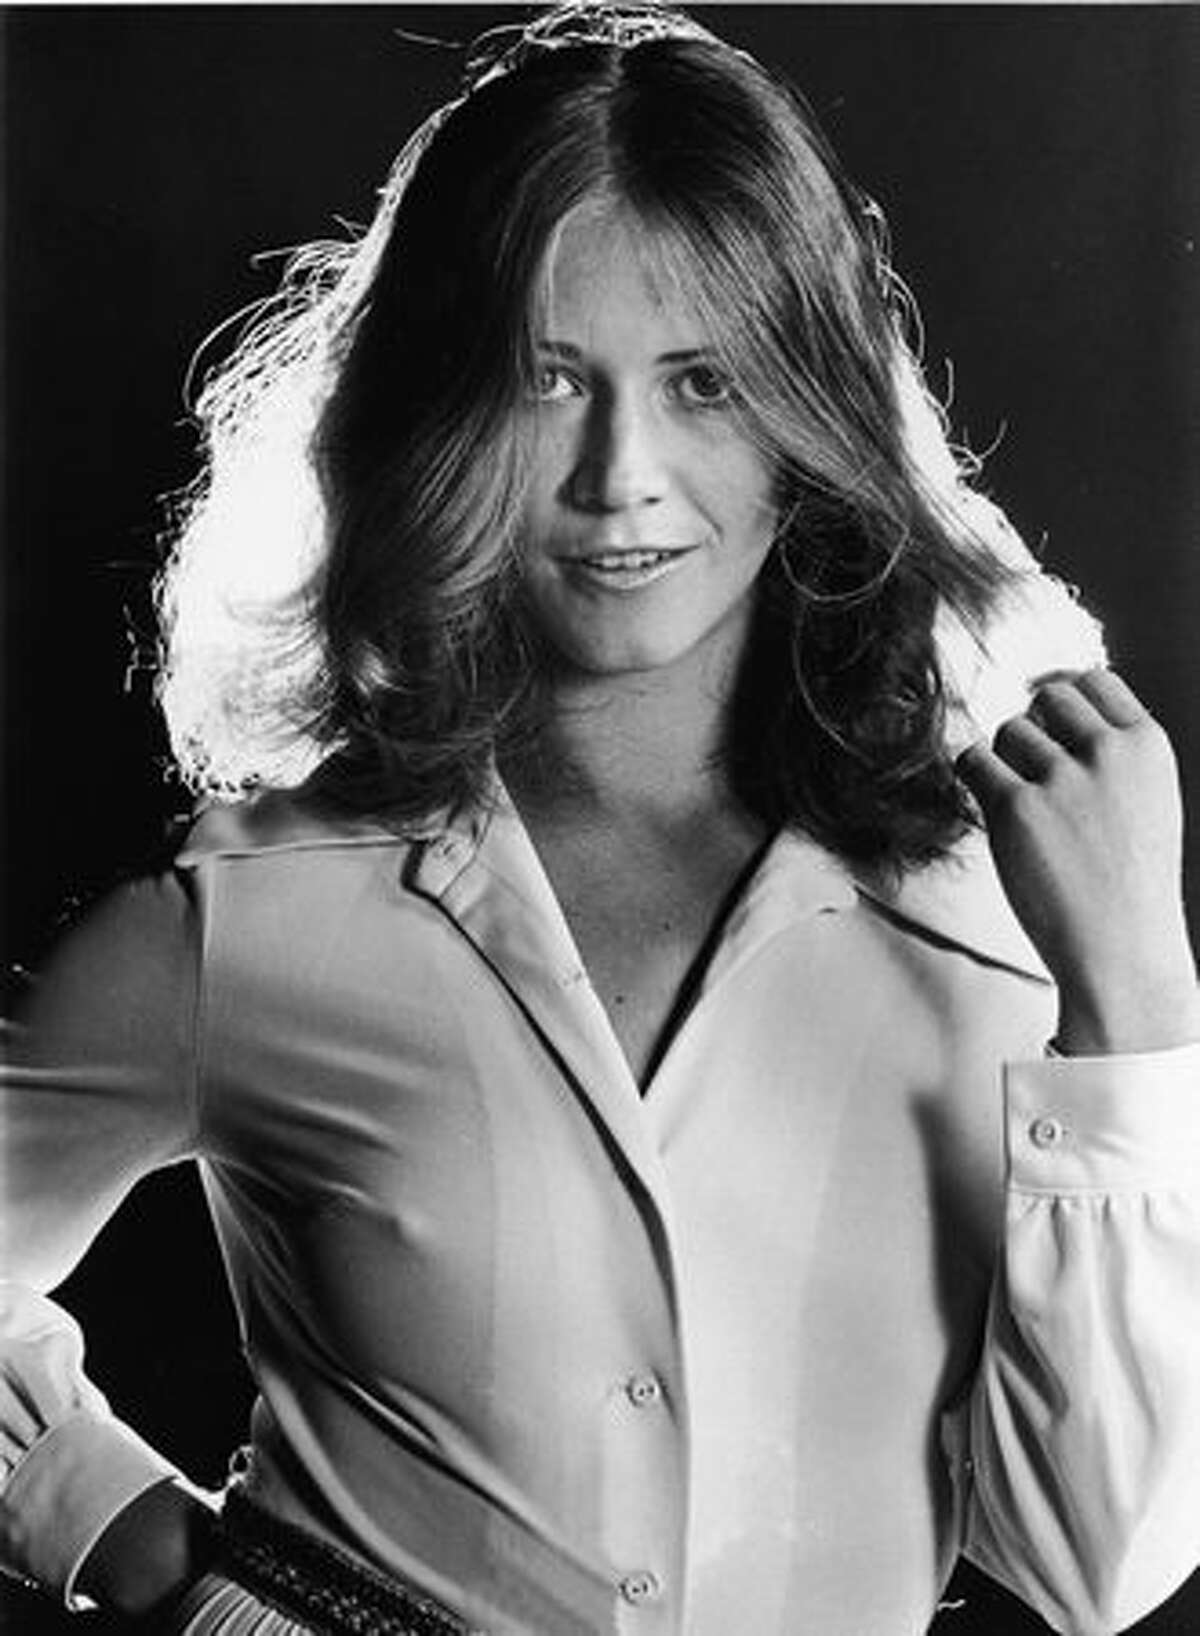 Promotional portrait of American adult film actor Marilyn Chambers, circa 1972. Chambers, star of the groundbreaking film